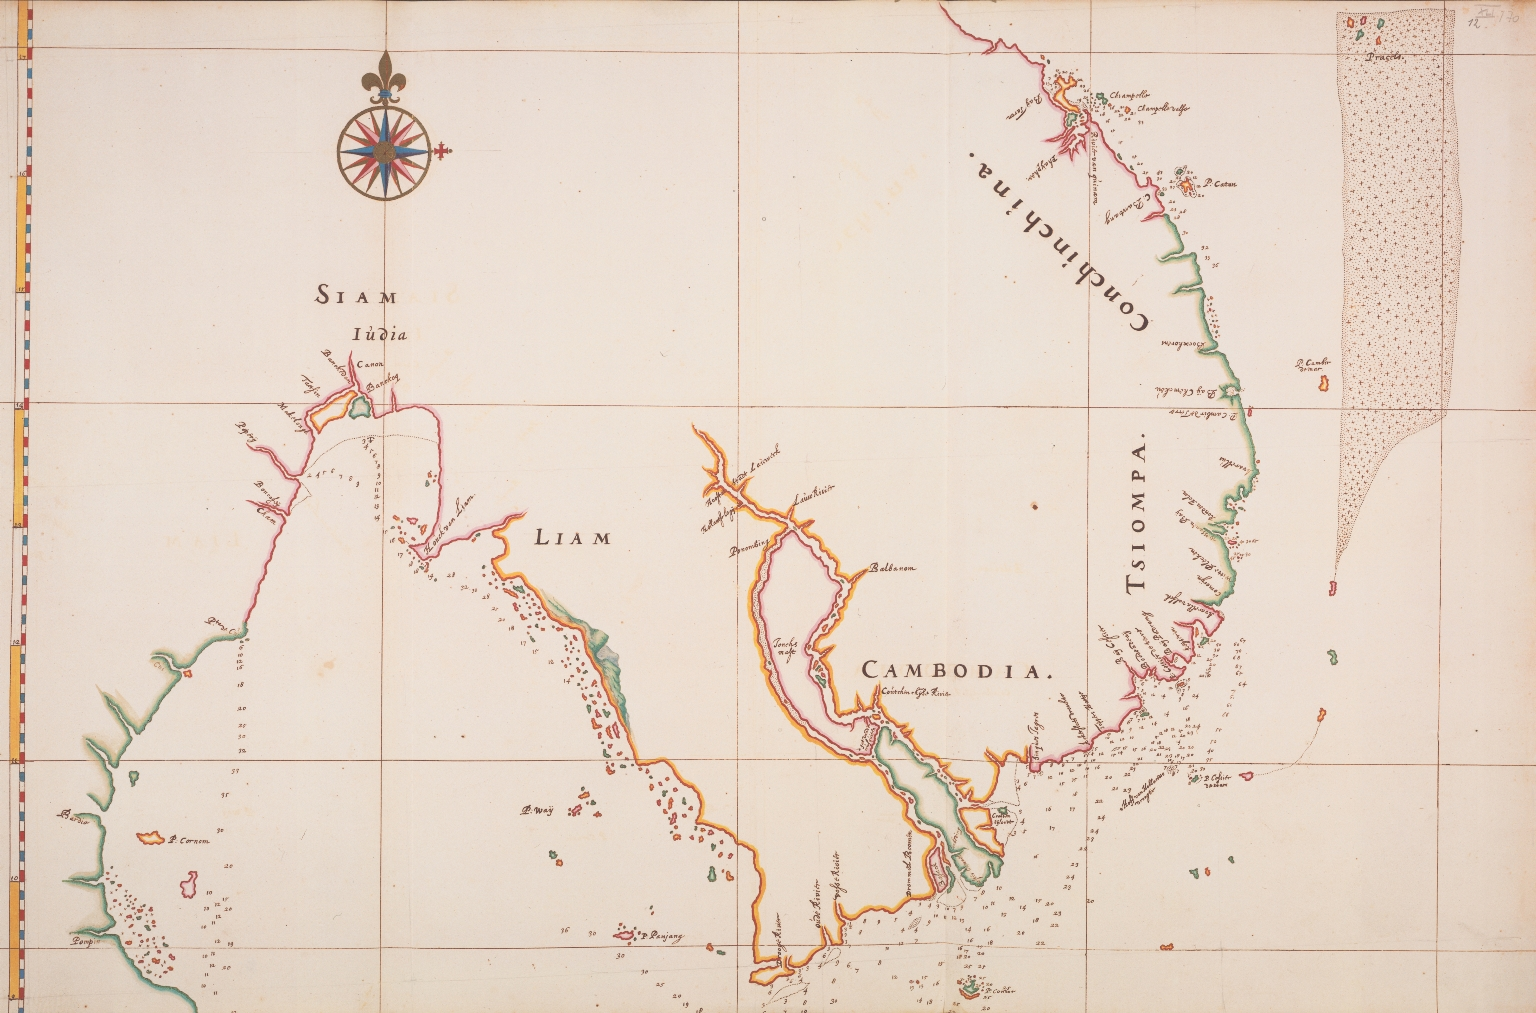 Map of the coasts of Siam, Cambodia and Cochin-China